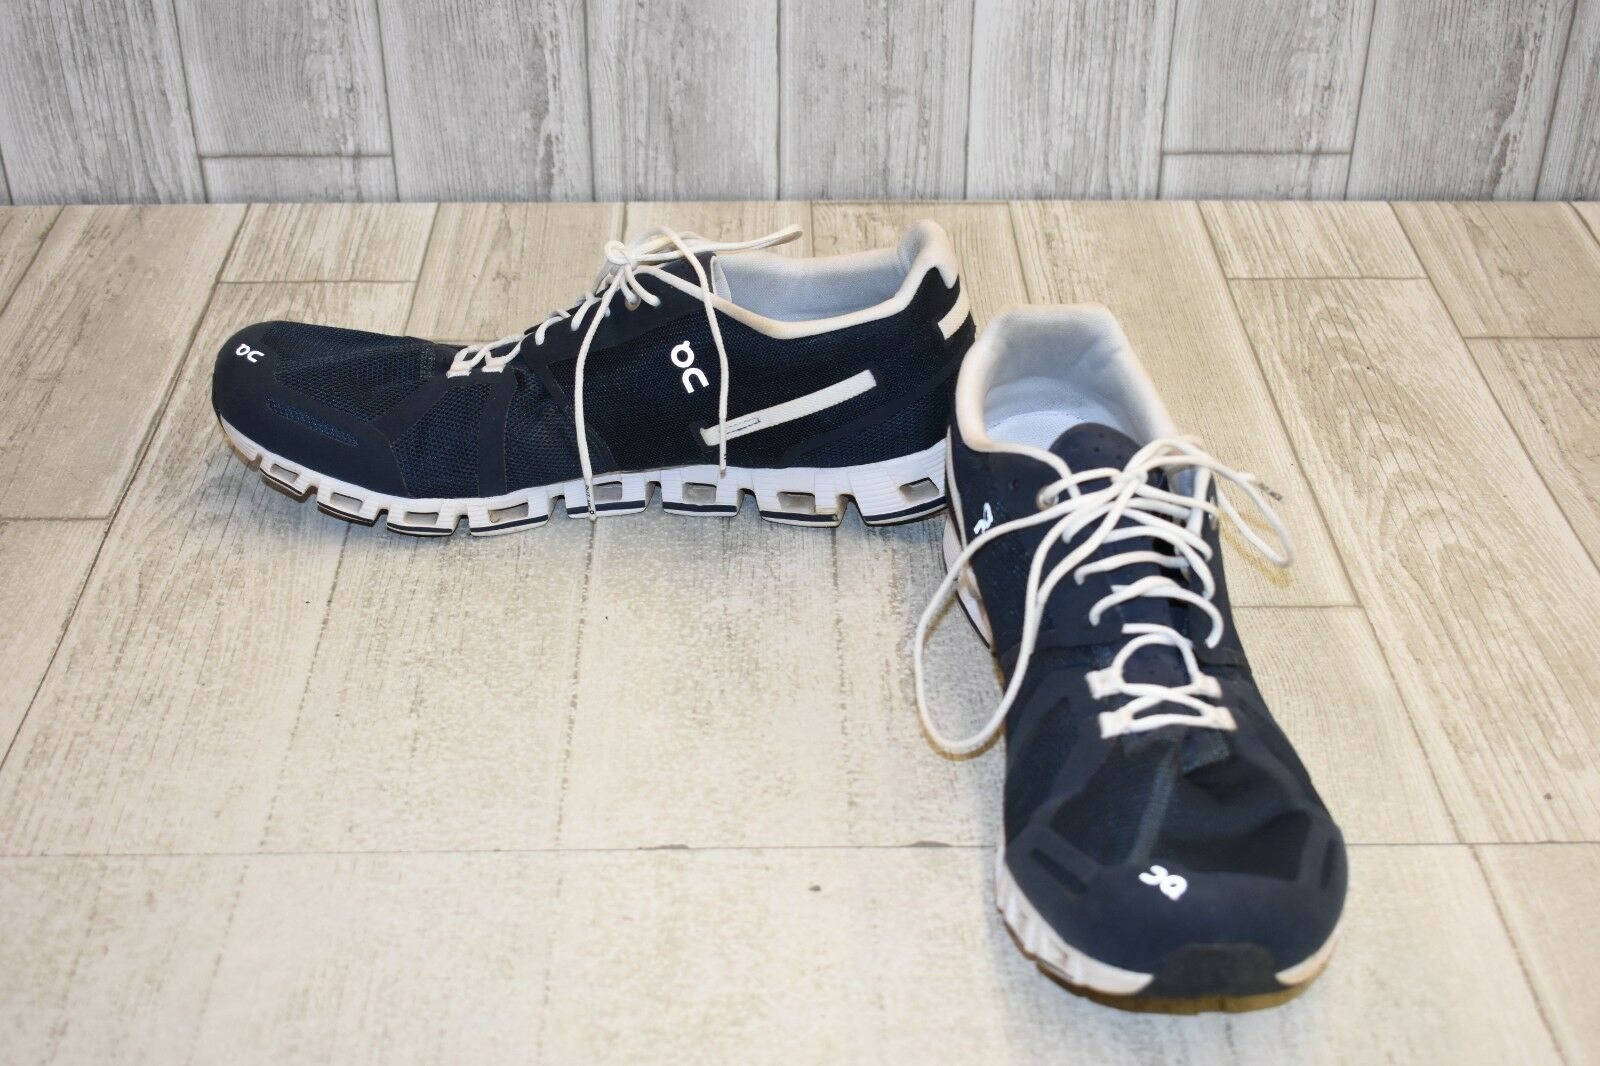 On Cloud Running Running Running scarpe - Uomo Dimensione 14 - bianca Navy 8ae574